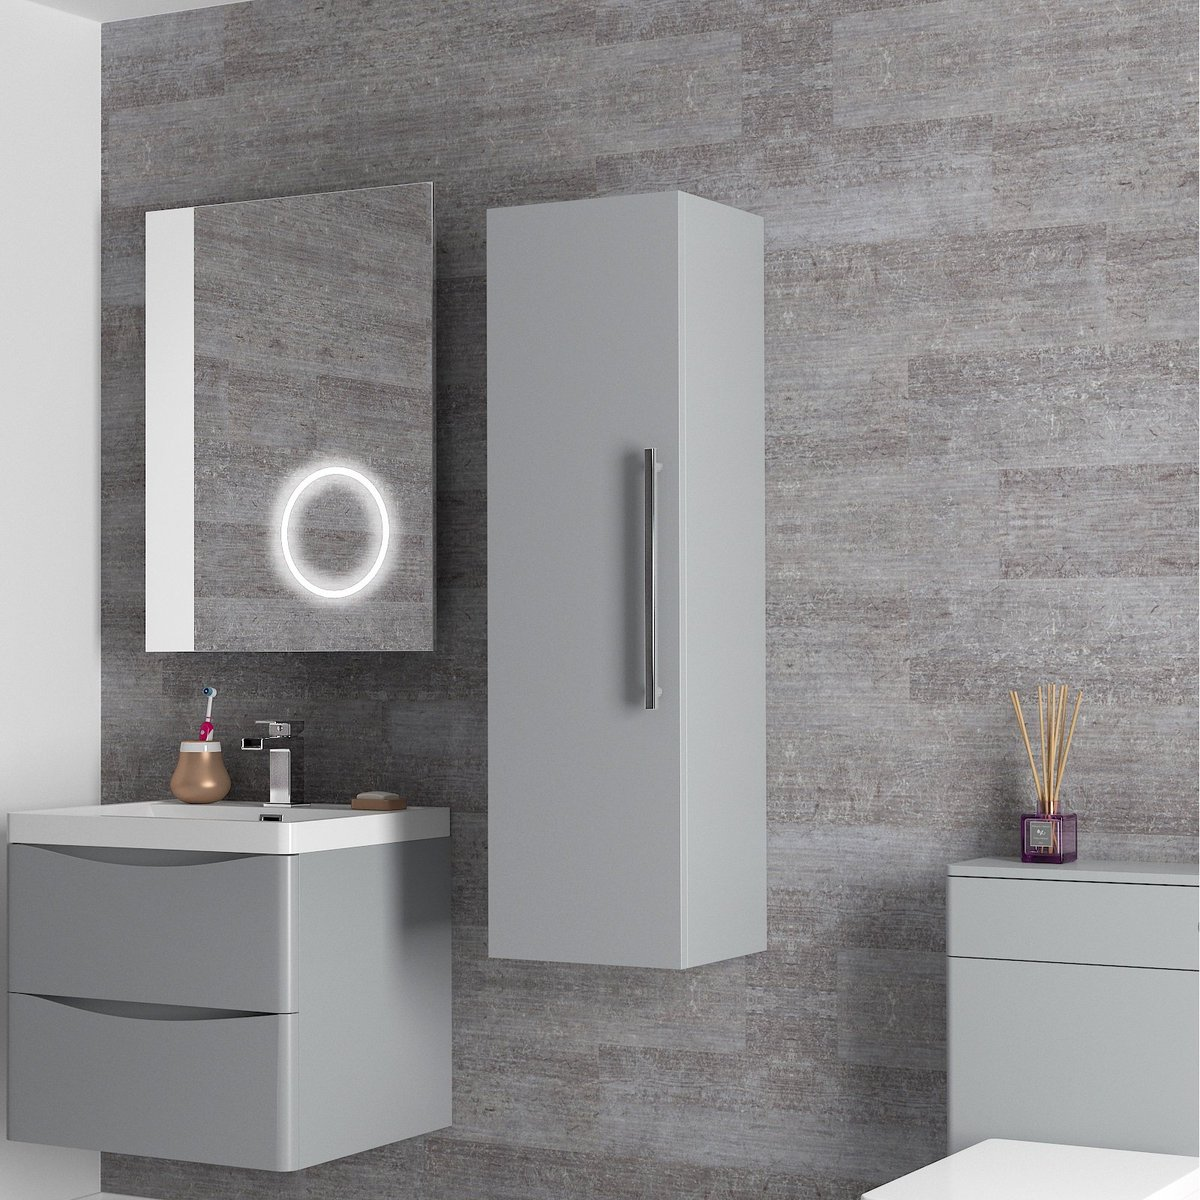 Introducing the Grey Bathroom Tall Storage Unit. This beautiful, wall hung, storage unit is perfect for a busy family bathroom. . http://tiny.cc/iuc3cz  . #bathroom #bathroomdesign #bathroomdecor #bathroomremodel #storage #tall #design #modern #stylish #stunning #wow #product